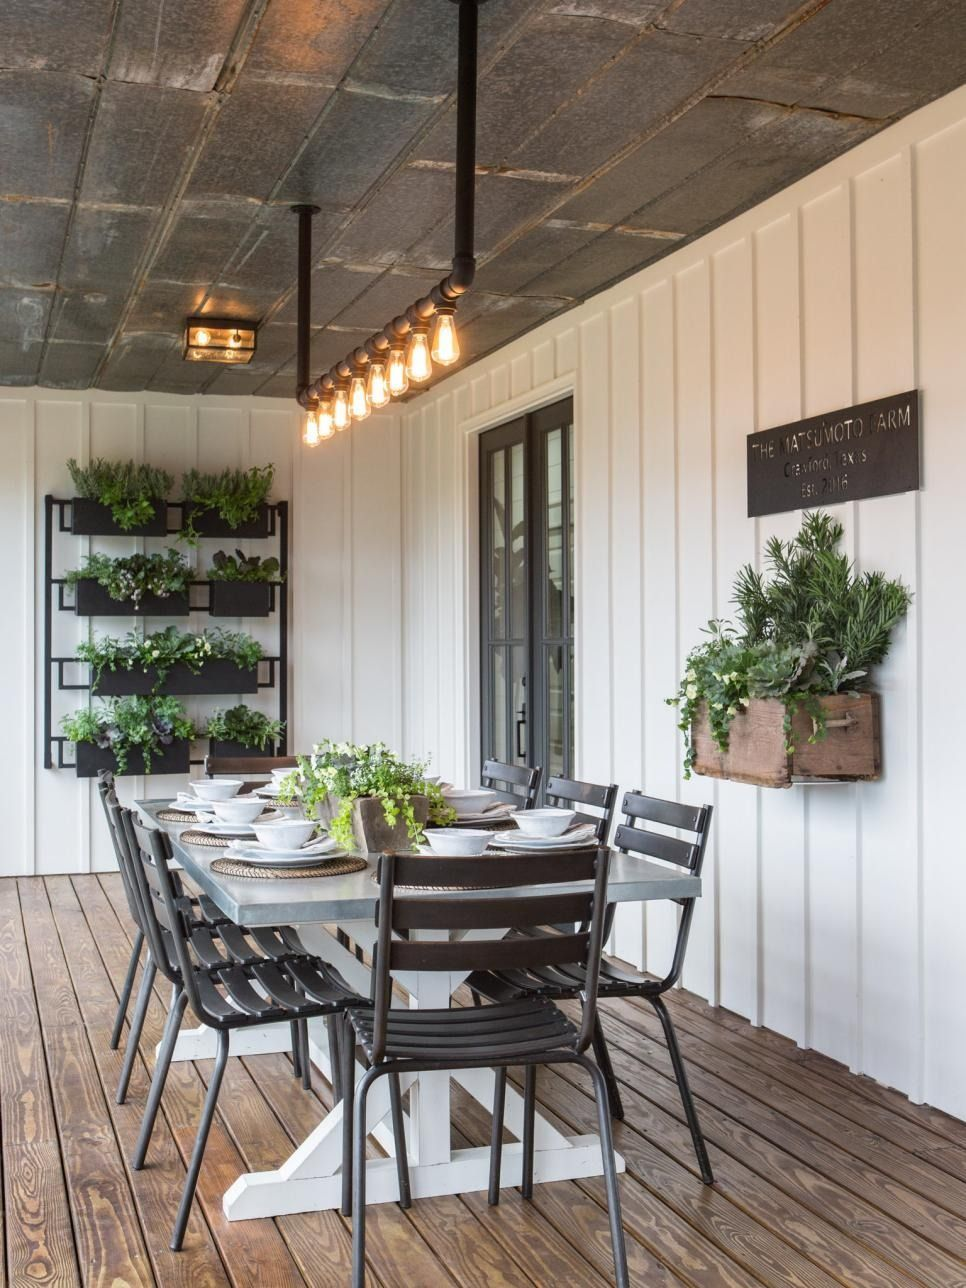 Traditional Exterior Front Porch Design Pictures Remodel Decor And Ideas Soooo Pretty: Plant Walls Outside Under Porch. These Materials! Black, White, Wood And Cement #diyhome